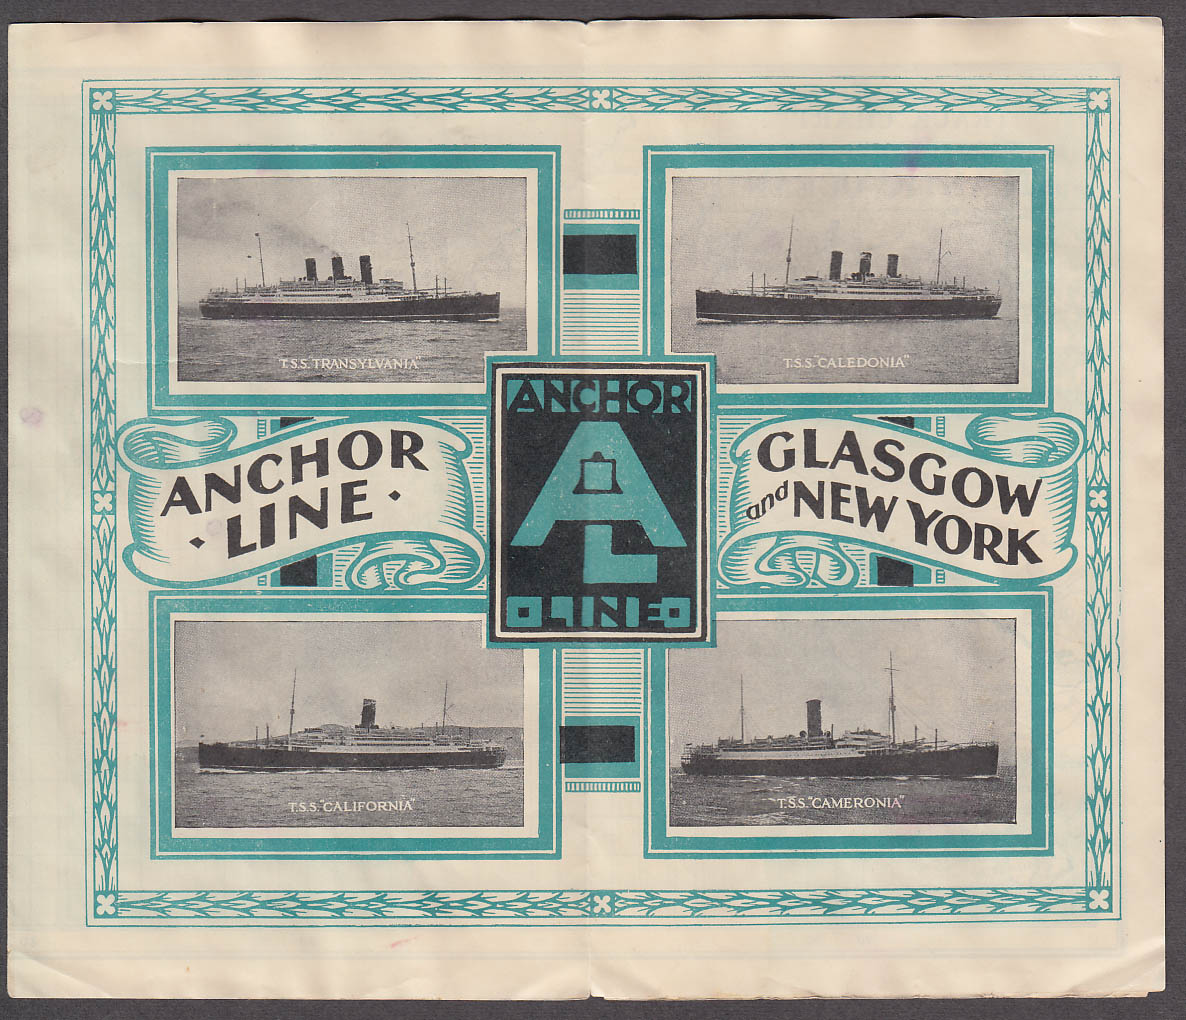 Anchor Line TSS Caledonia Atlantic Track Chart 1939 to Glasgow